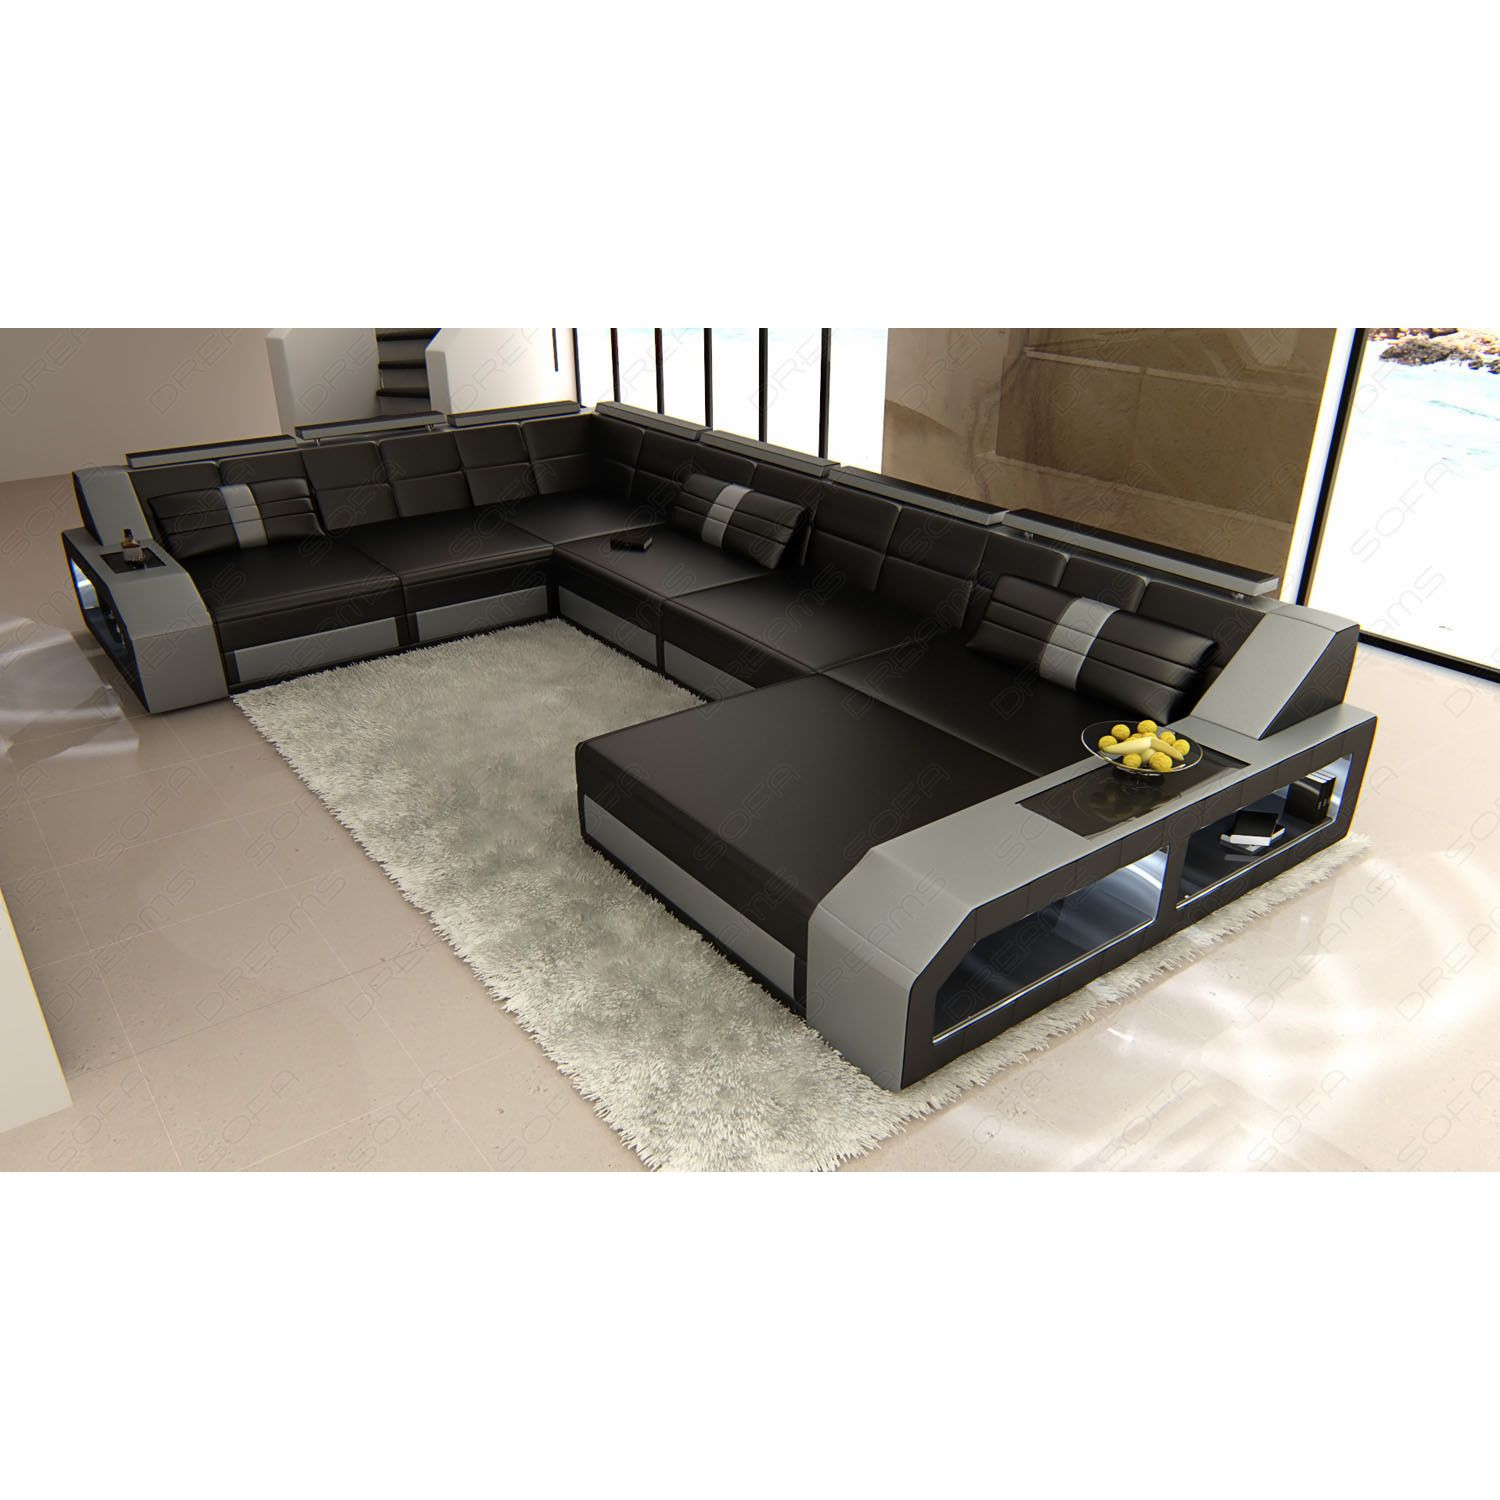 Design Sectional Sofa Houston with LED Lights (Sectional ...